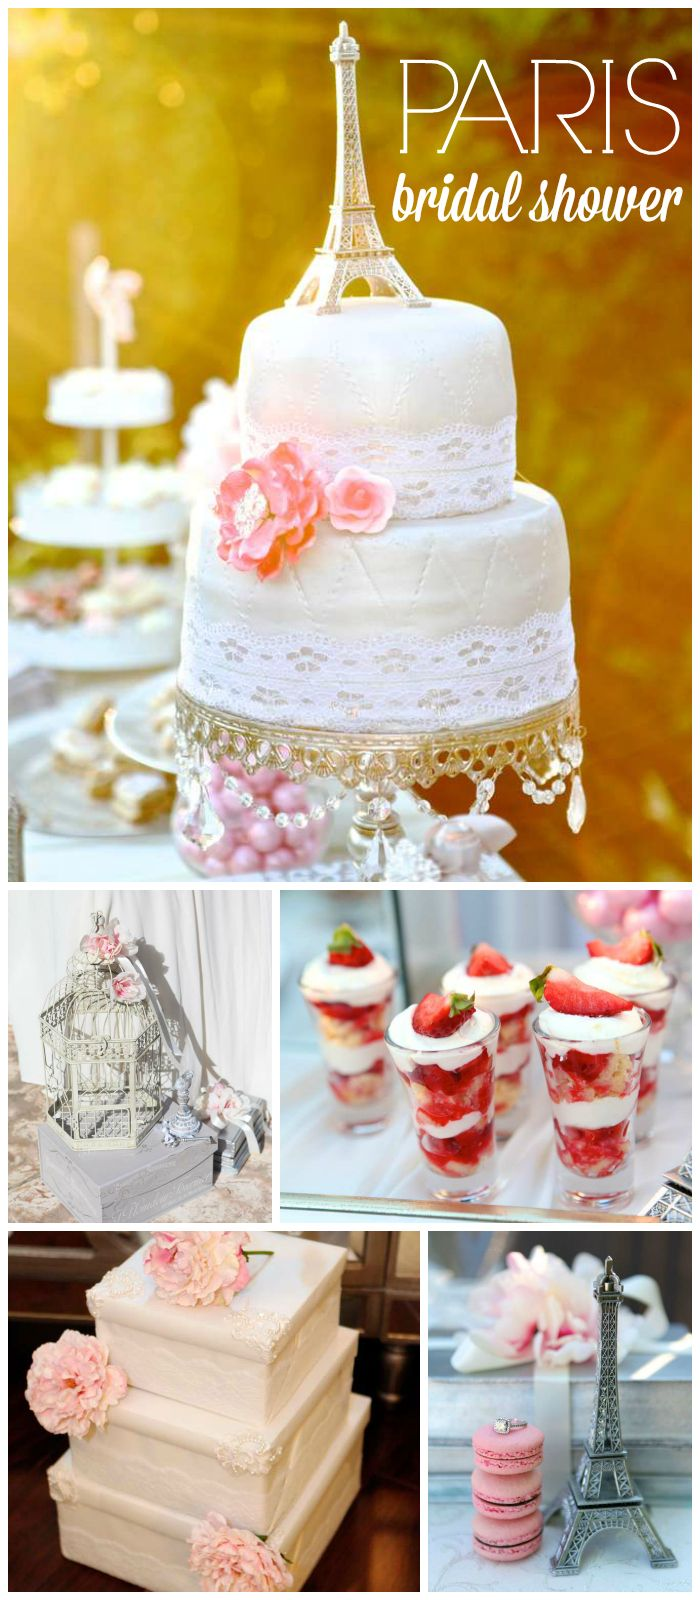 A stunning outdoor Paris themed bridal shower with a gorgeous cake and party decorations! See more party planning ideas at CatchMyParty.com!